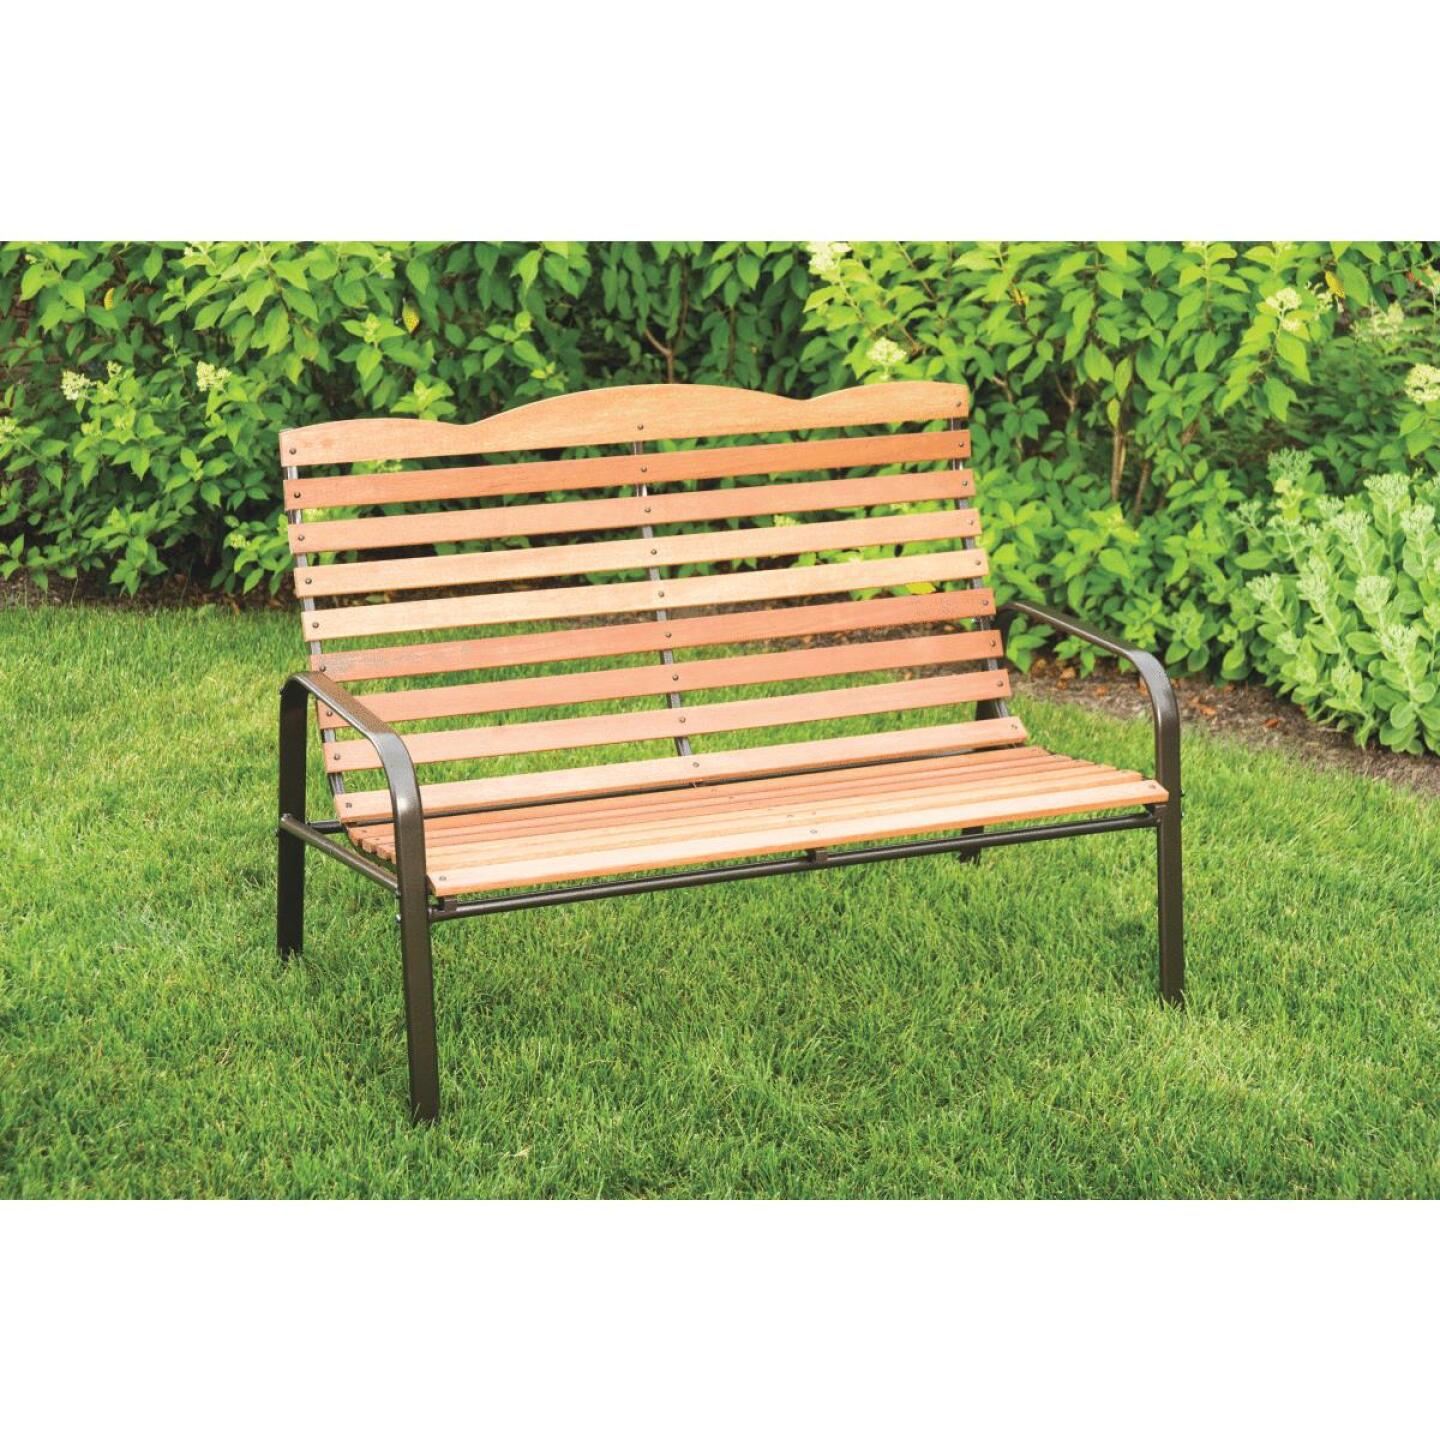 Jack Post Natural Steel 28.75 In. W. x 36.75 In. H x 71.75 In L Bench Image 6